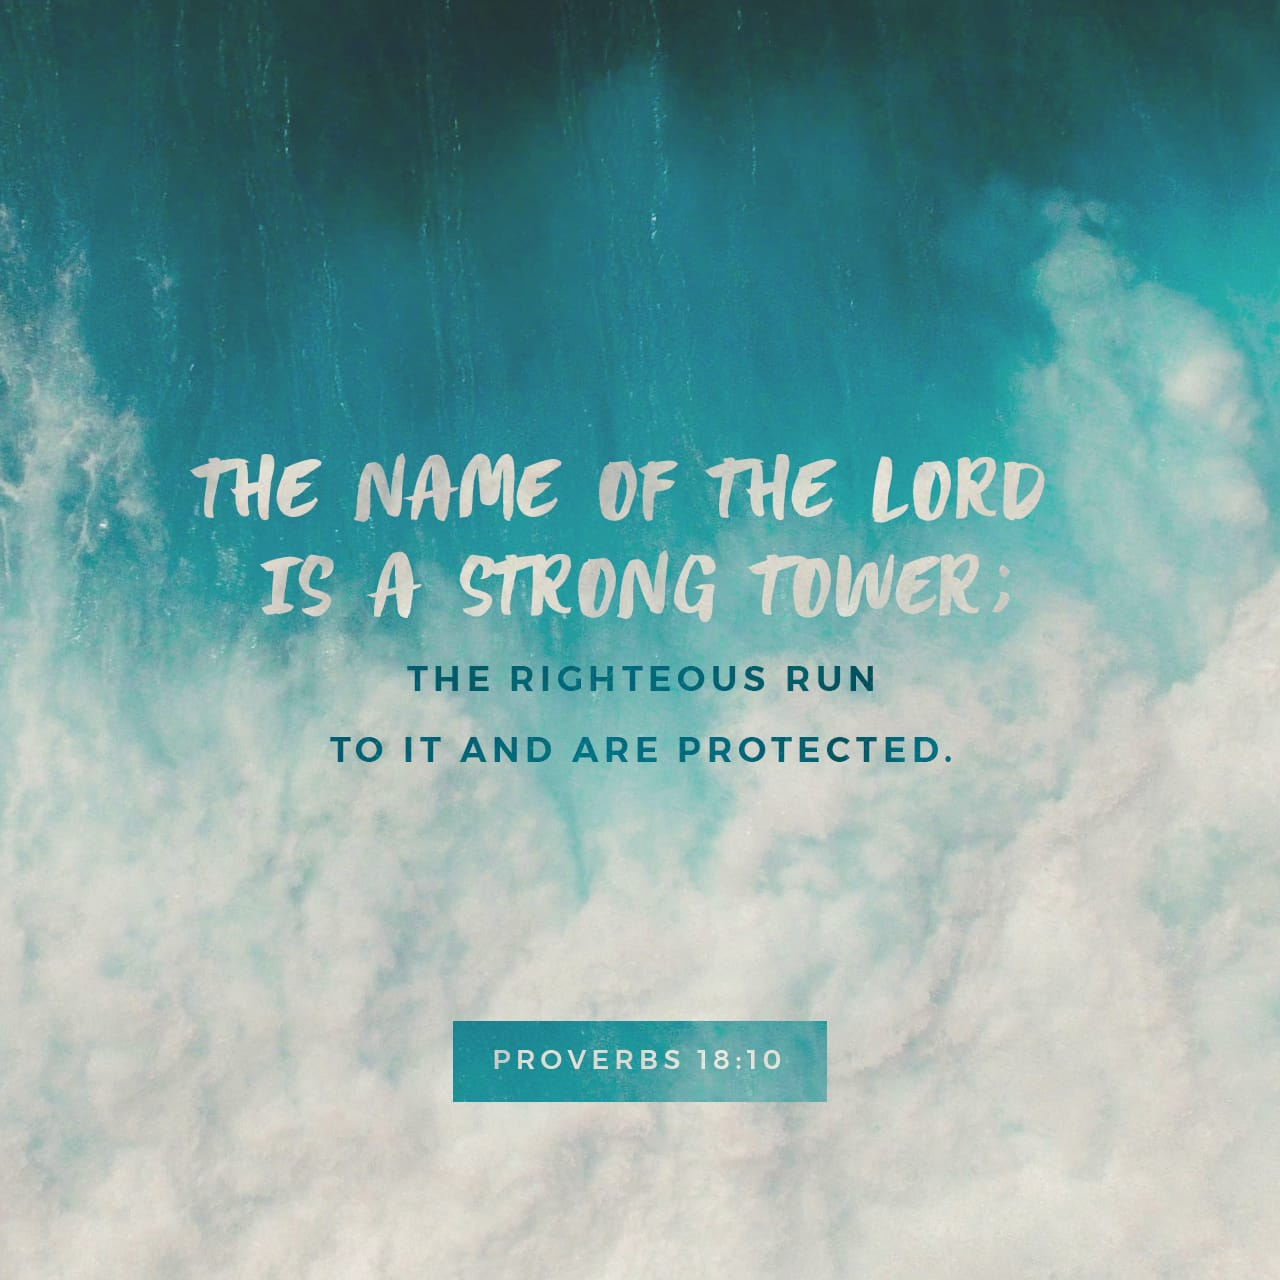 Proverbs 18:10 The name of the LORD is a strong tower: the righteous runneth into it, and is safe. | King James Version (KJV)